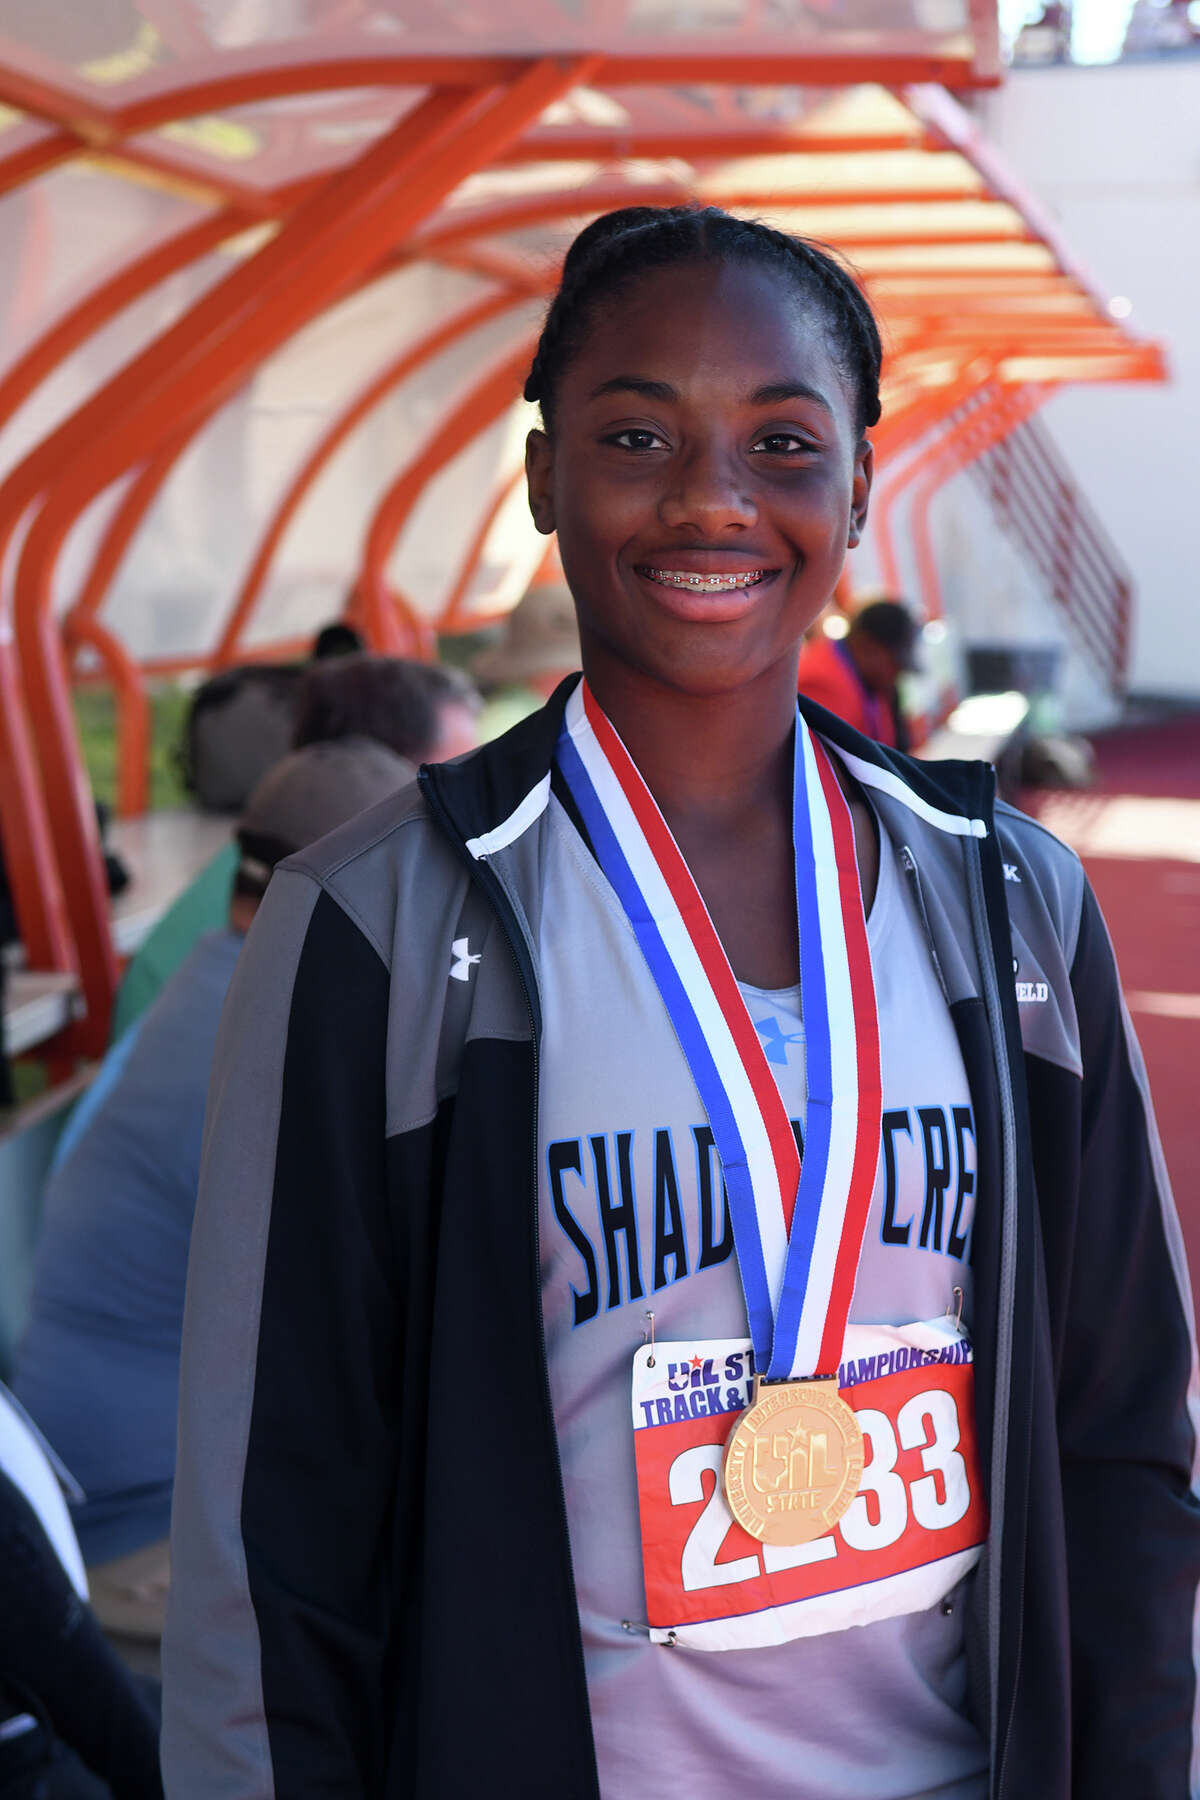 Alvin Shawdow Creek junior Hailey Pollard showsn off her gold medal after winning the Class 5A Girls Discus event at the UIL Track & Field State Championships at Mike A. Myers Stadium on the campus of the University of Texas at Austin in Austin on Friday, May 12, 2017. (Photo by Jerry Baker/Freelance)